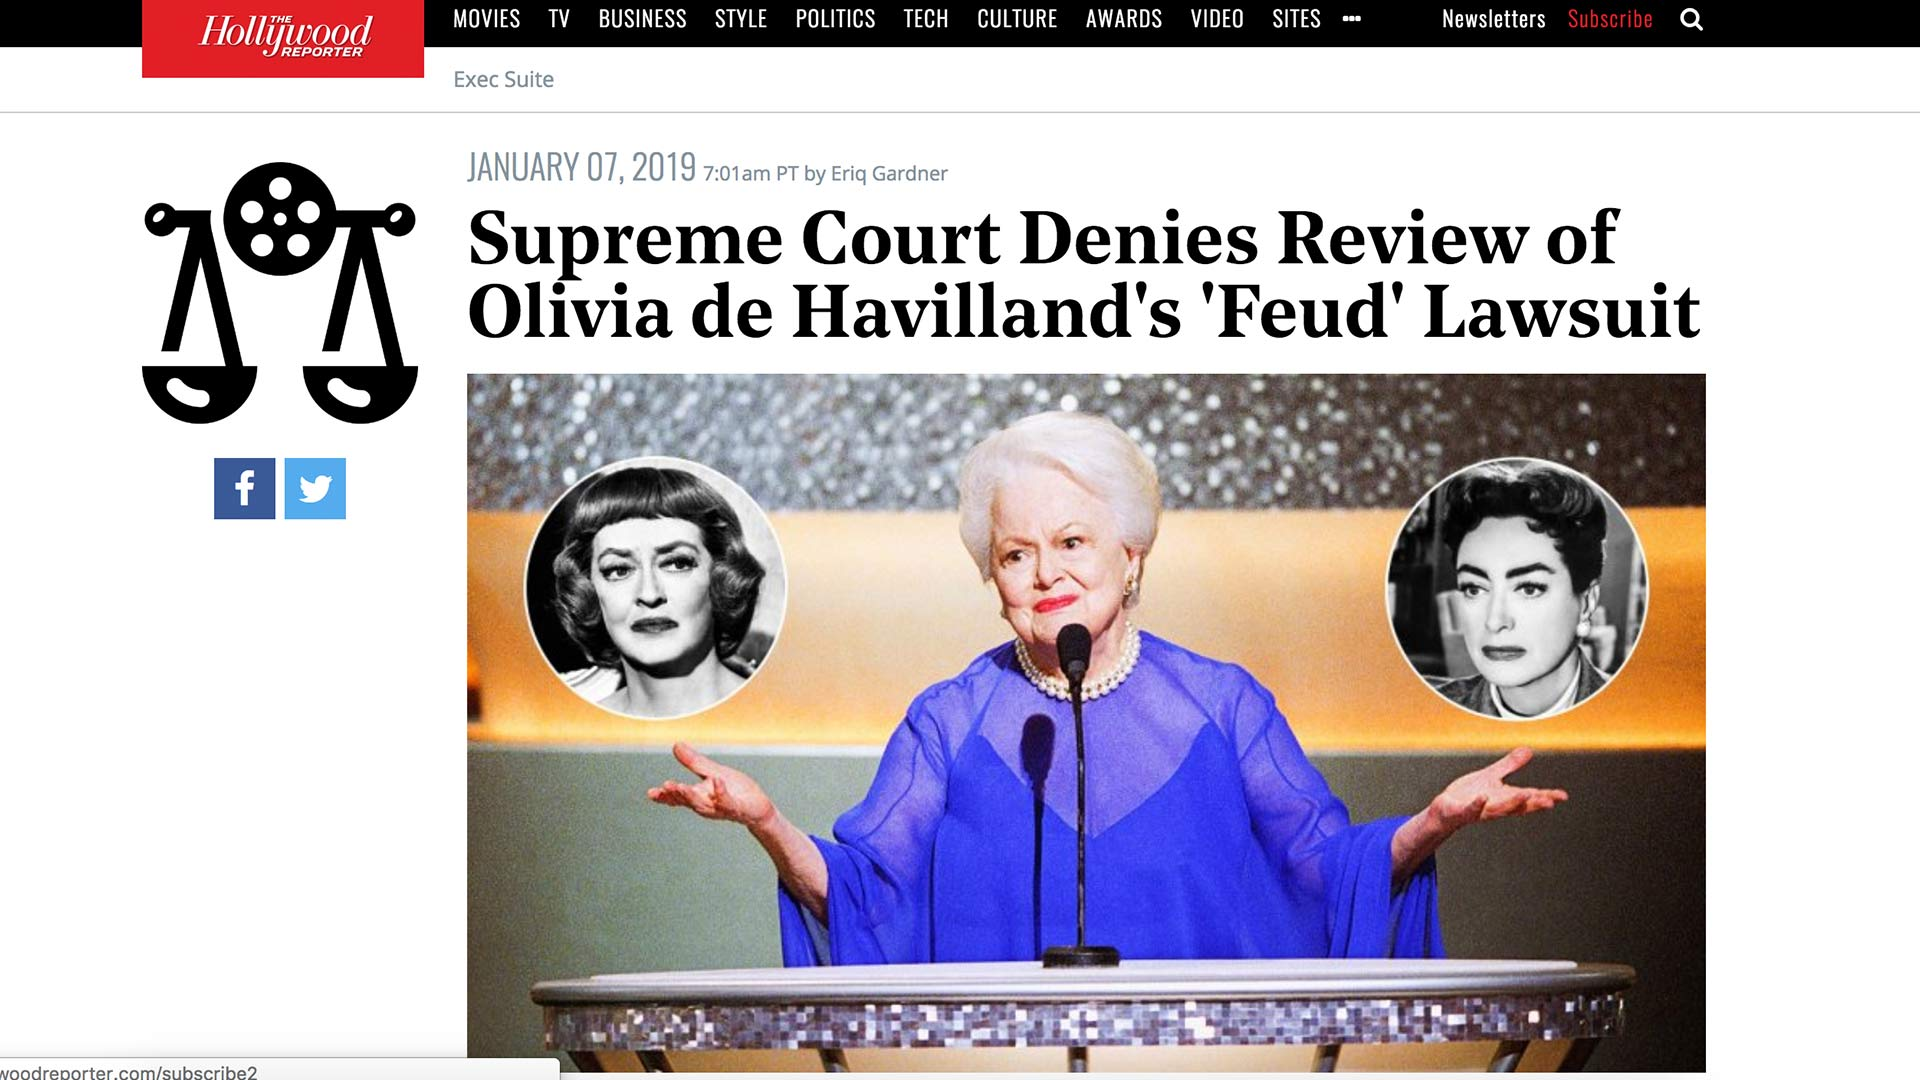 Fairness Rocks News Supreme Court Denies Review of Olivia de Havilland's 'Feud' Lawsuit